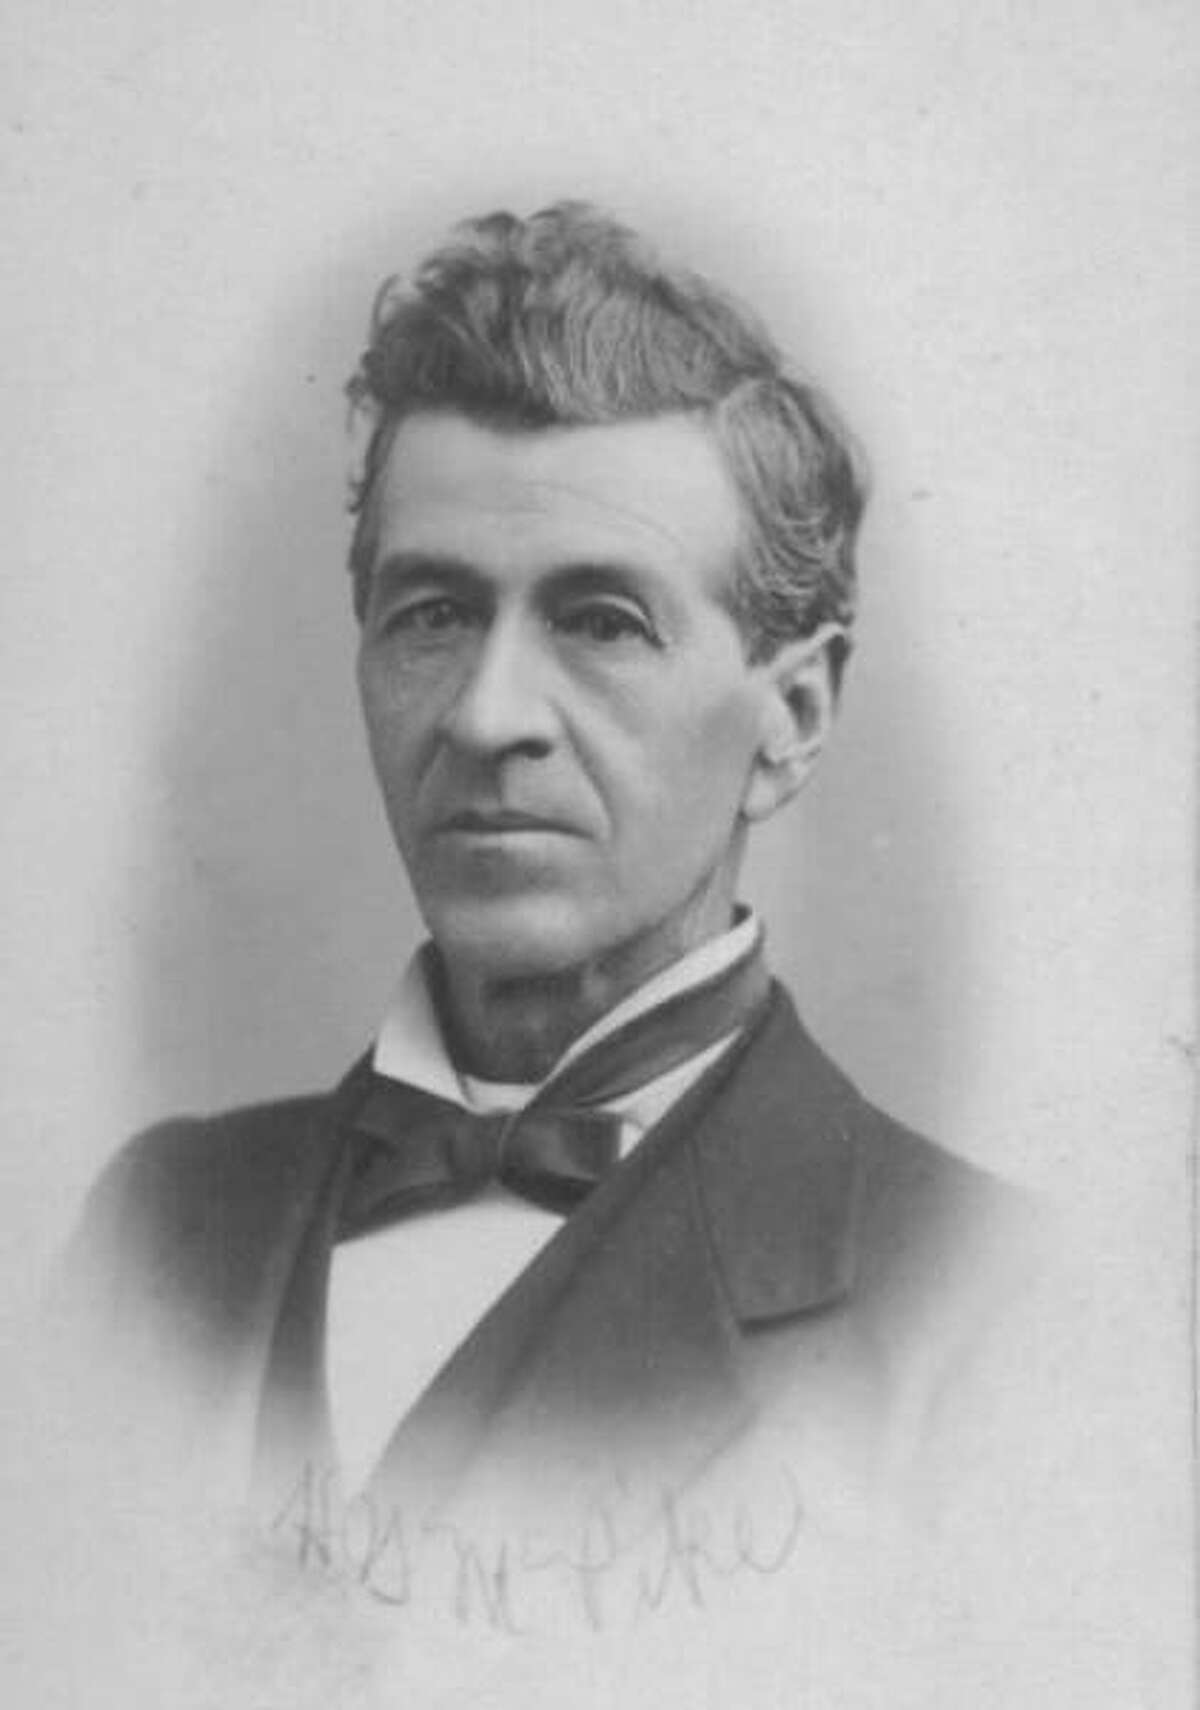 Henry McPike was one of the most prominent citizens in Alton at he end of the 19th century and leading into the 20th century.